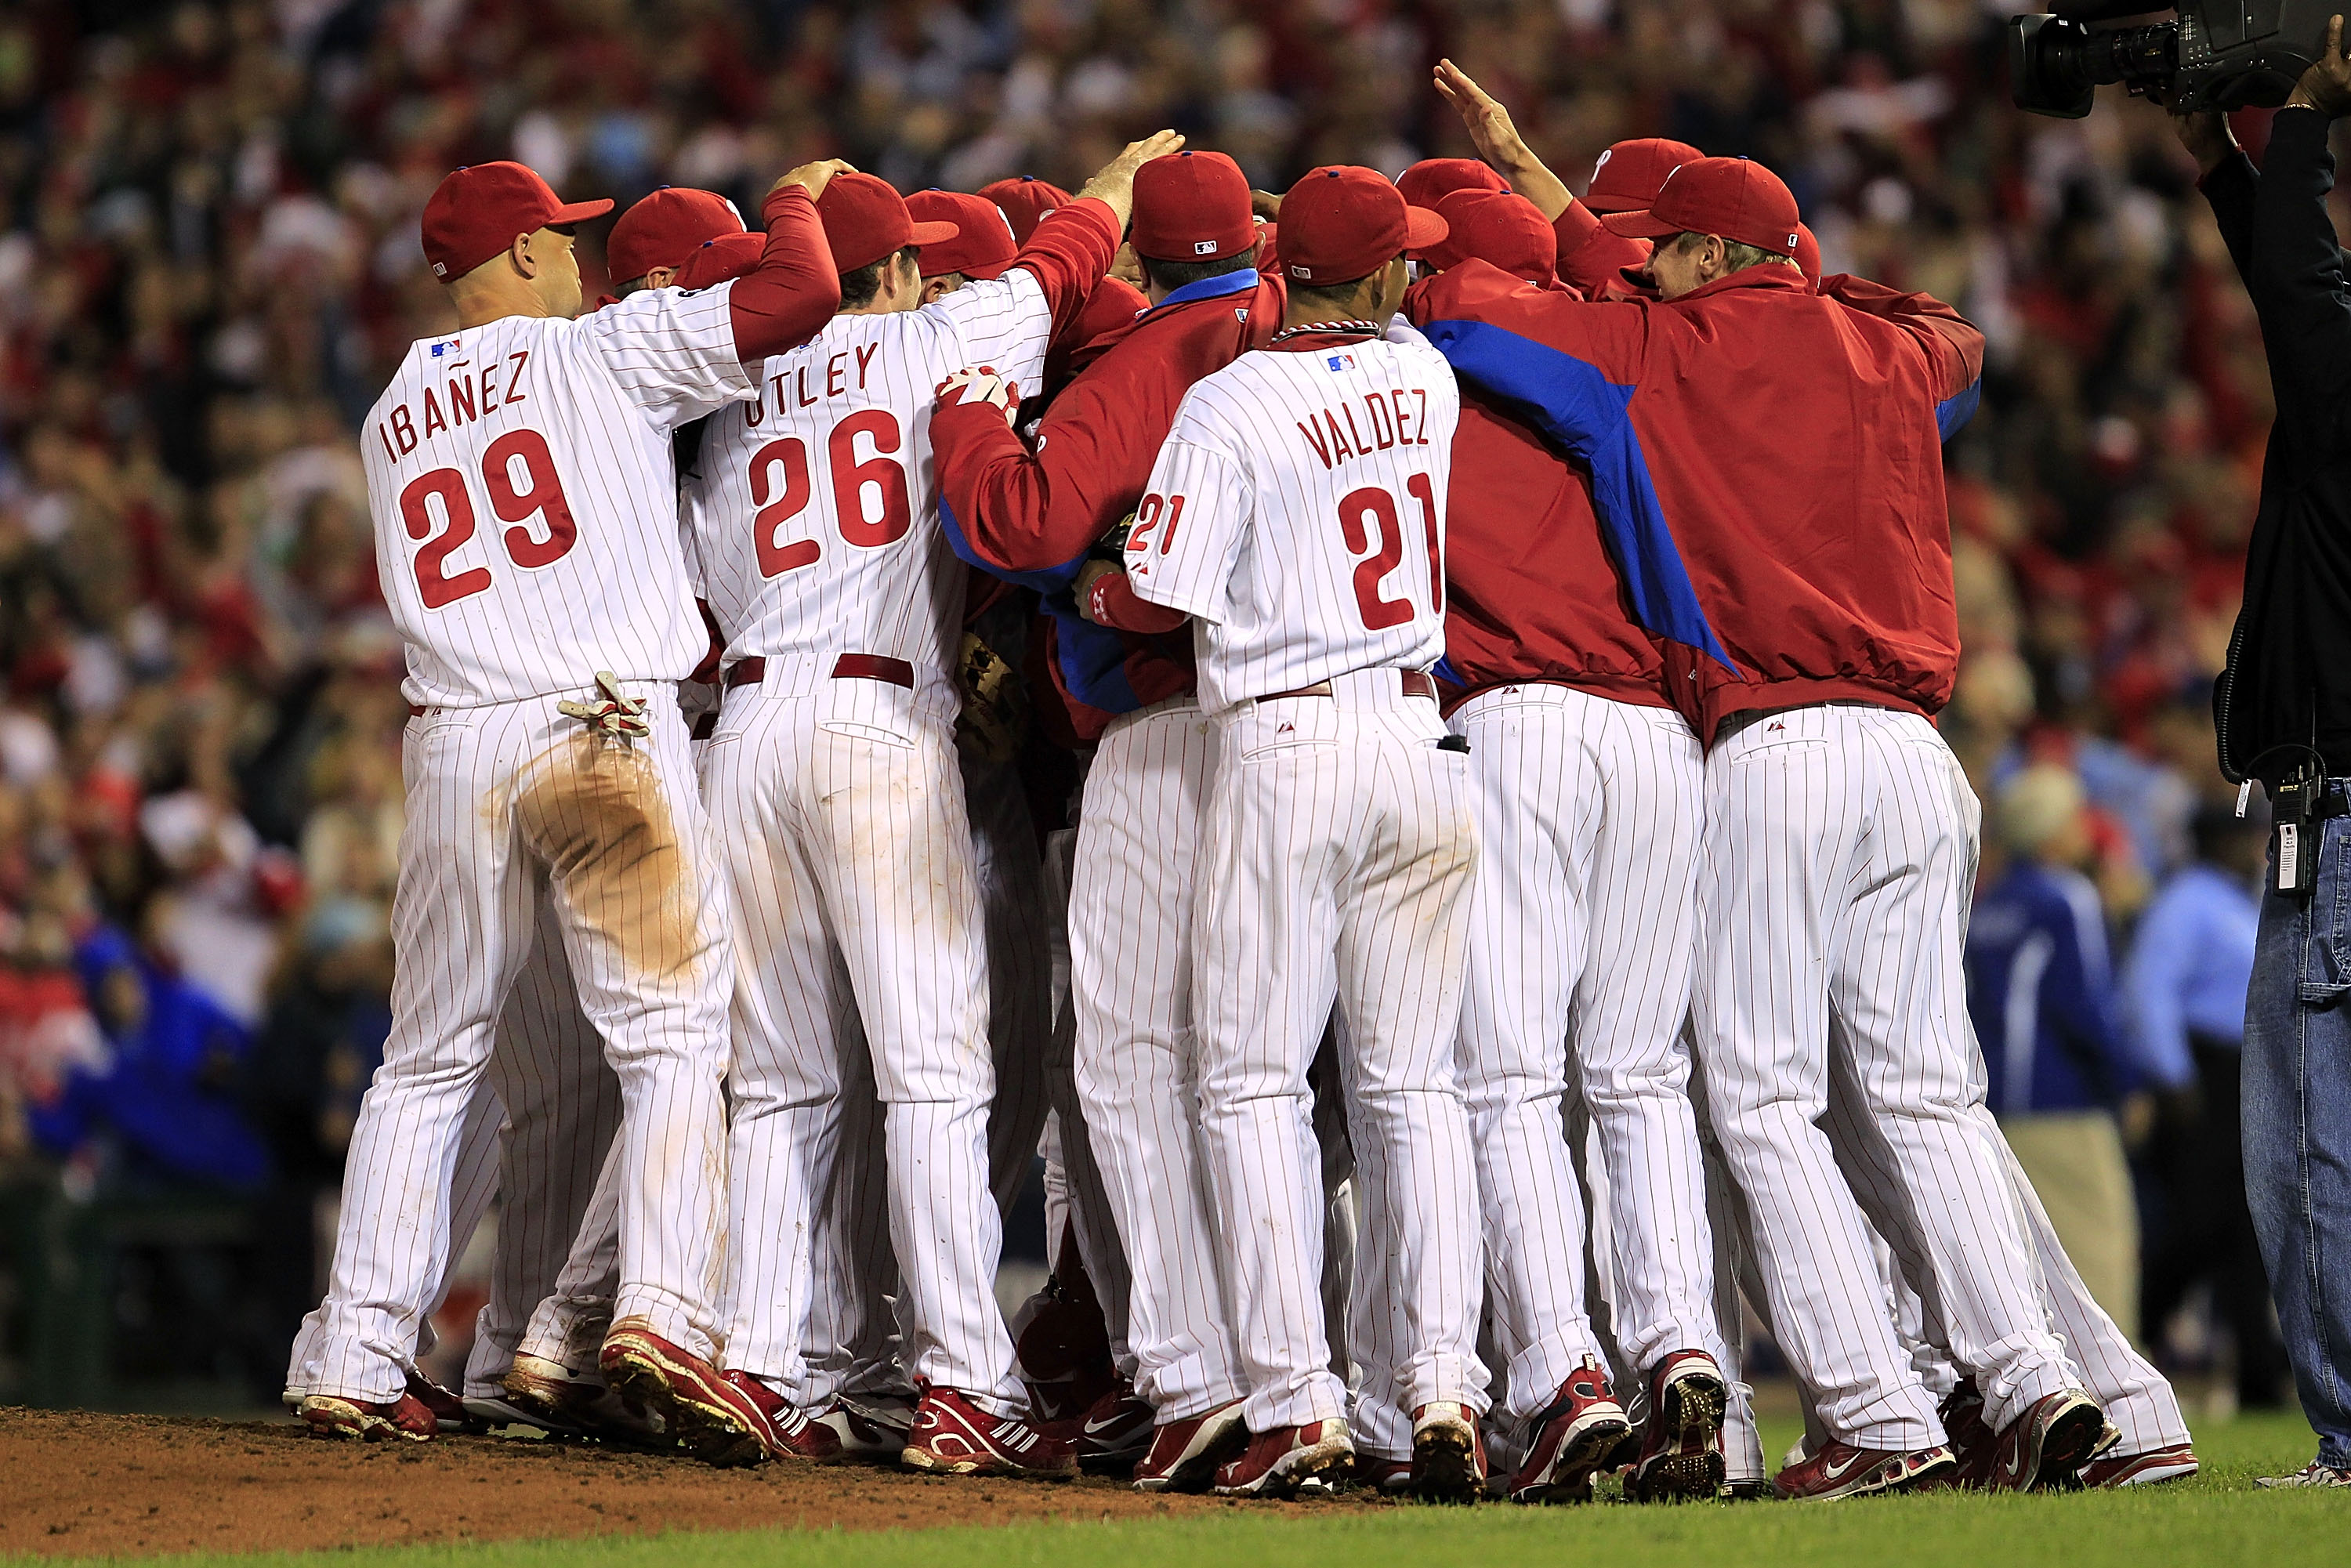 The Phillies are undoubtedly the team to beat in the NL in 2011.